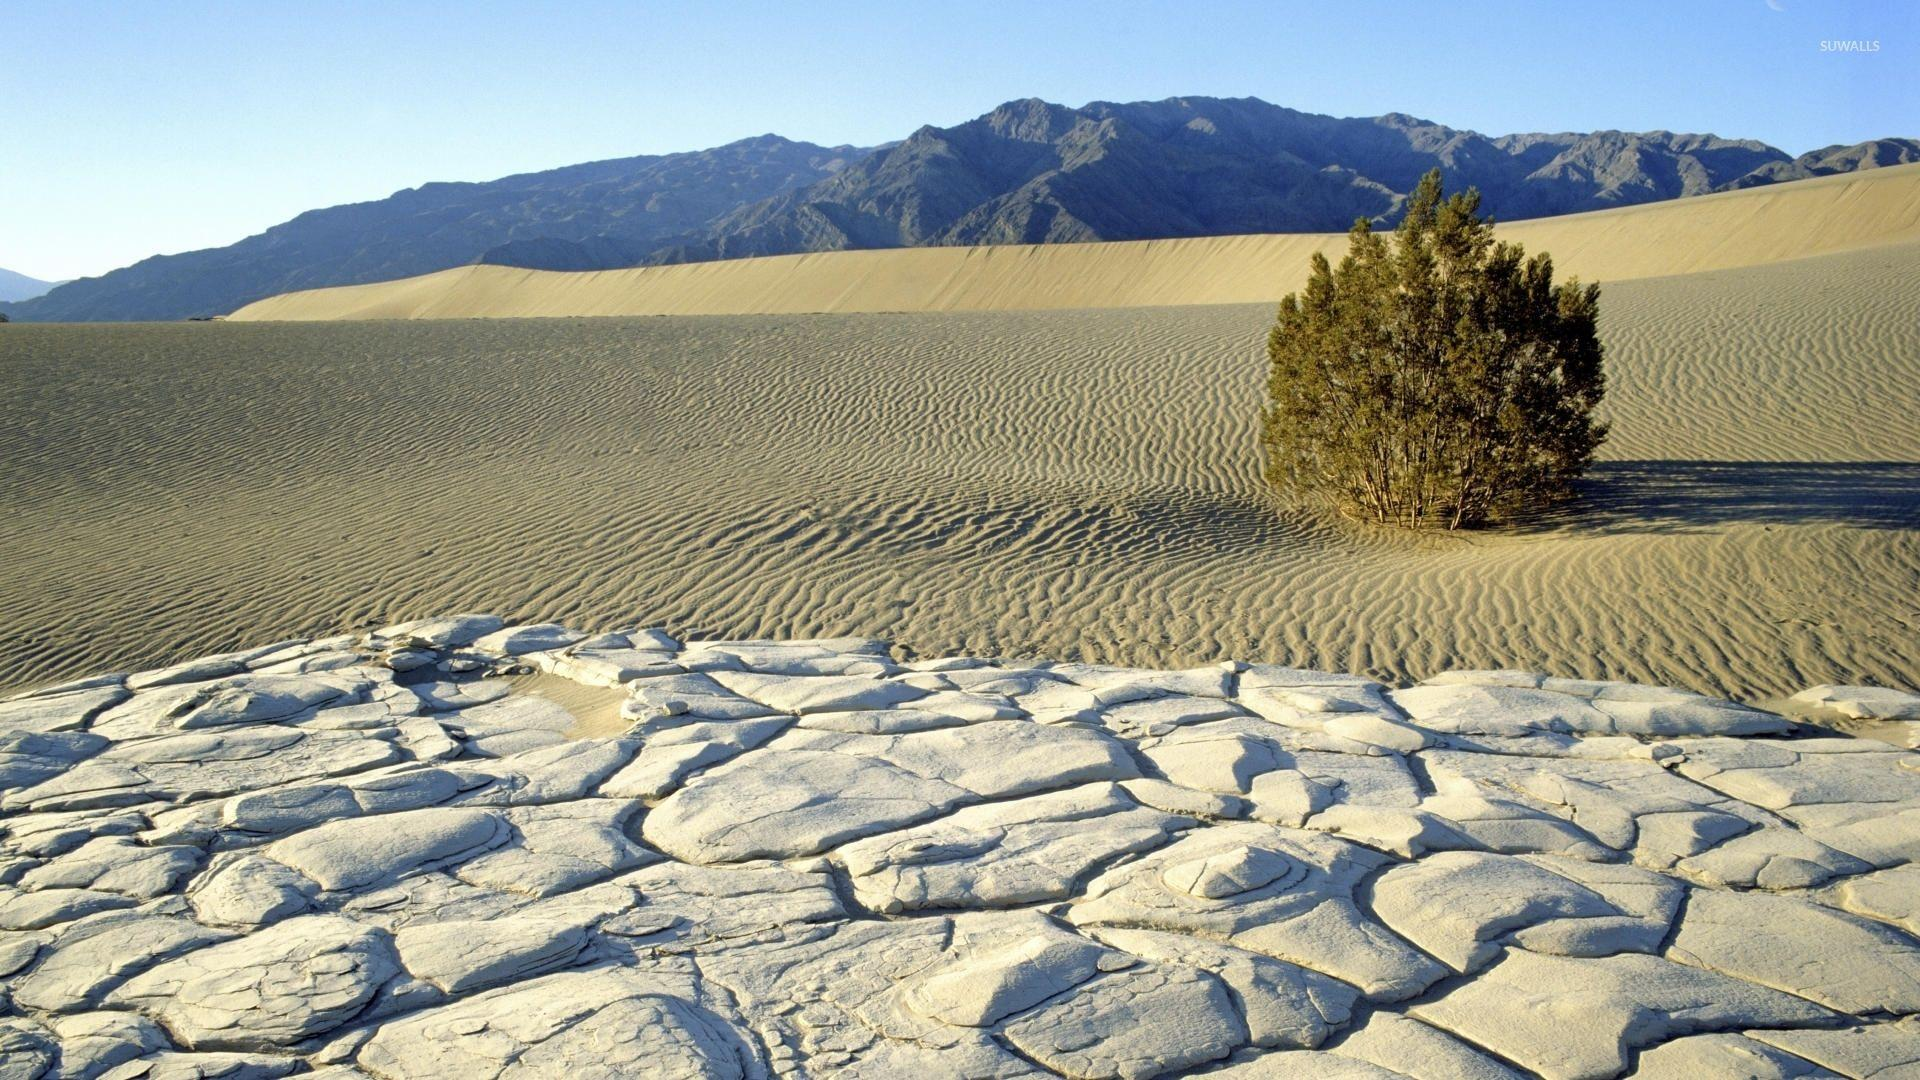 Sunny day in Death Valley National Park wallpapers